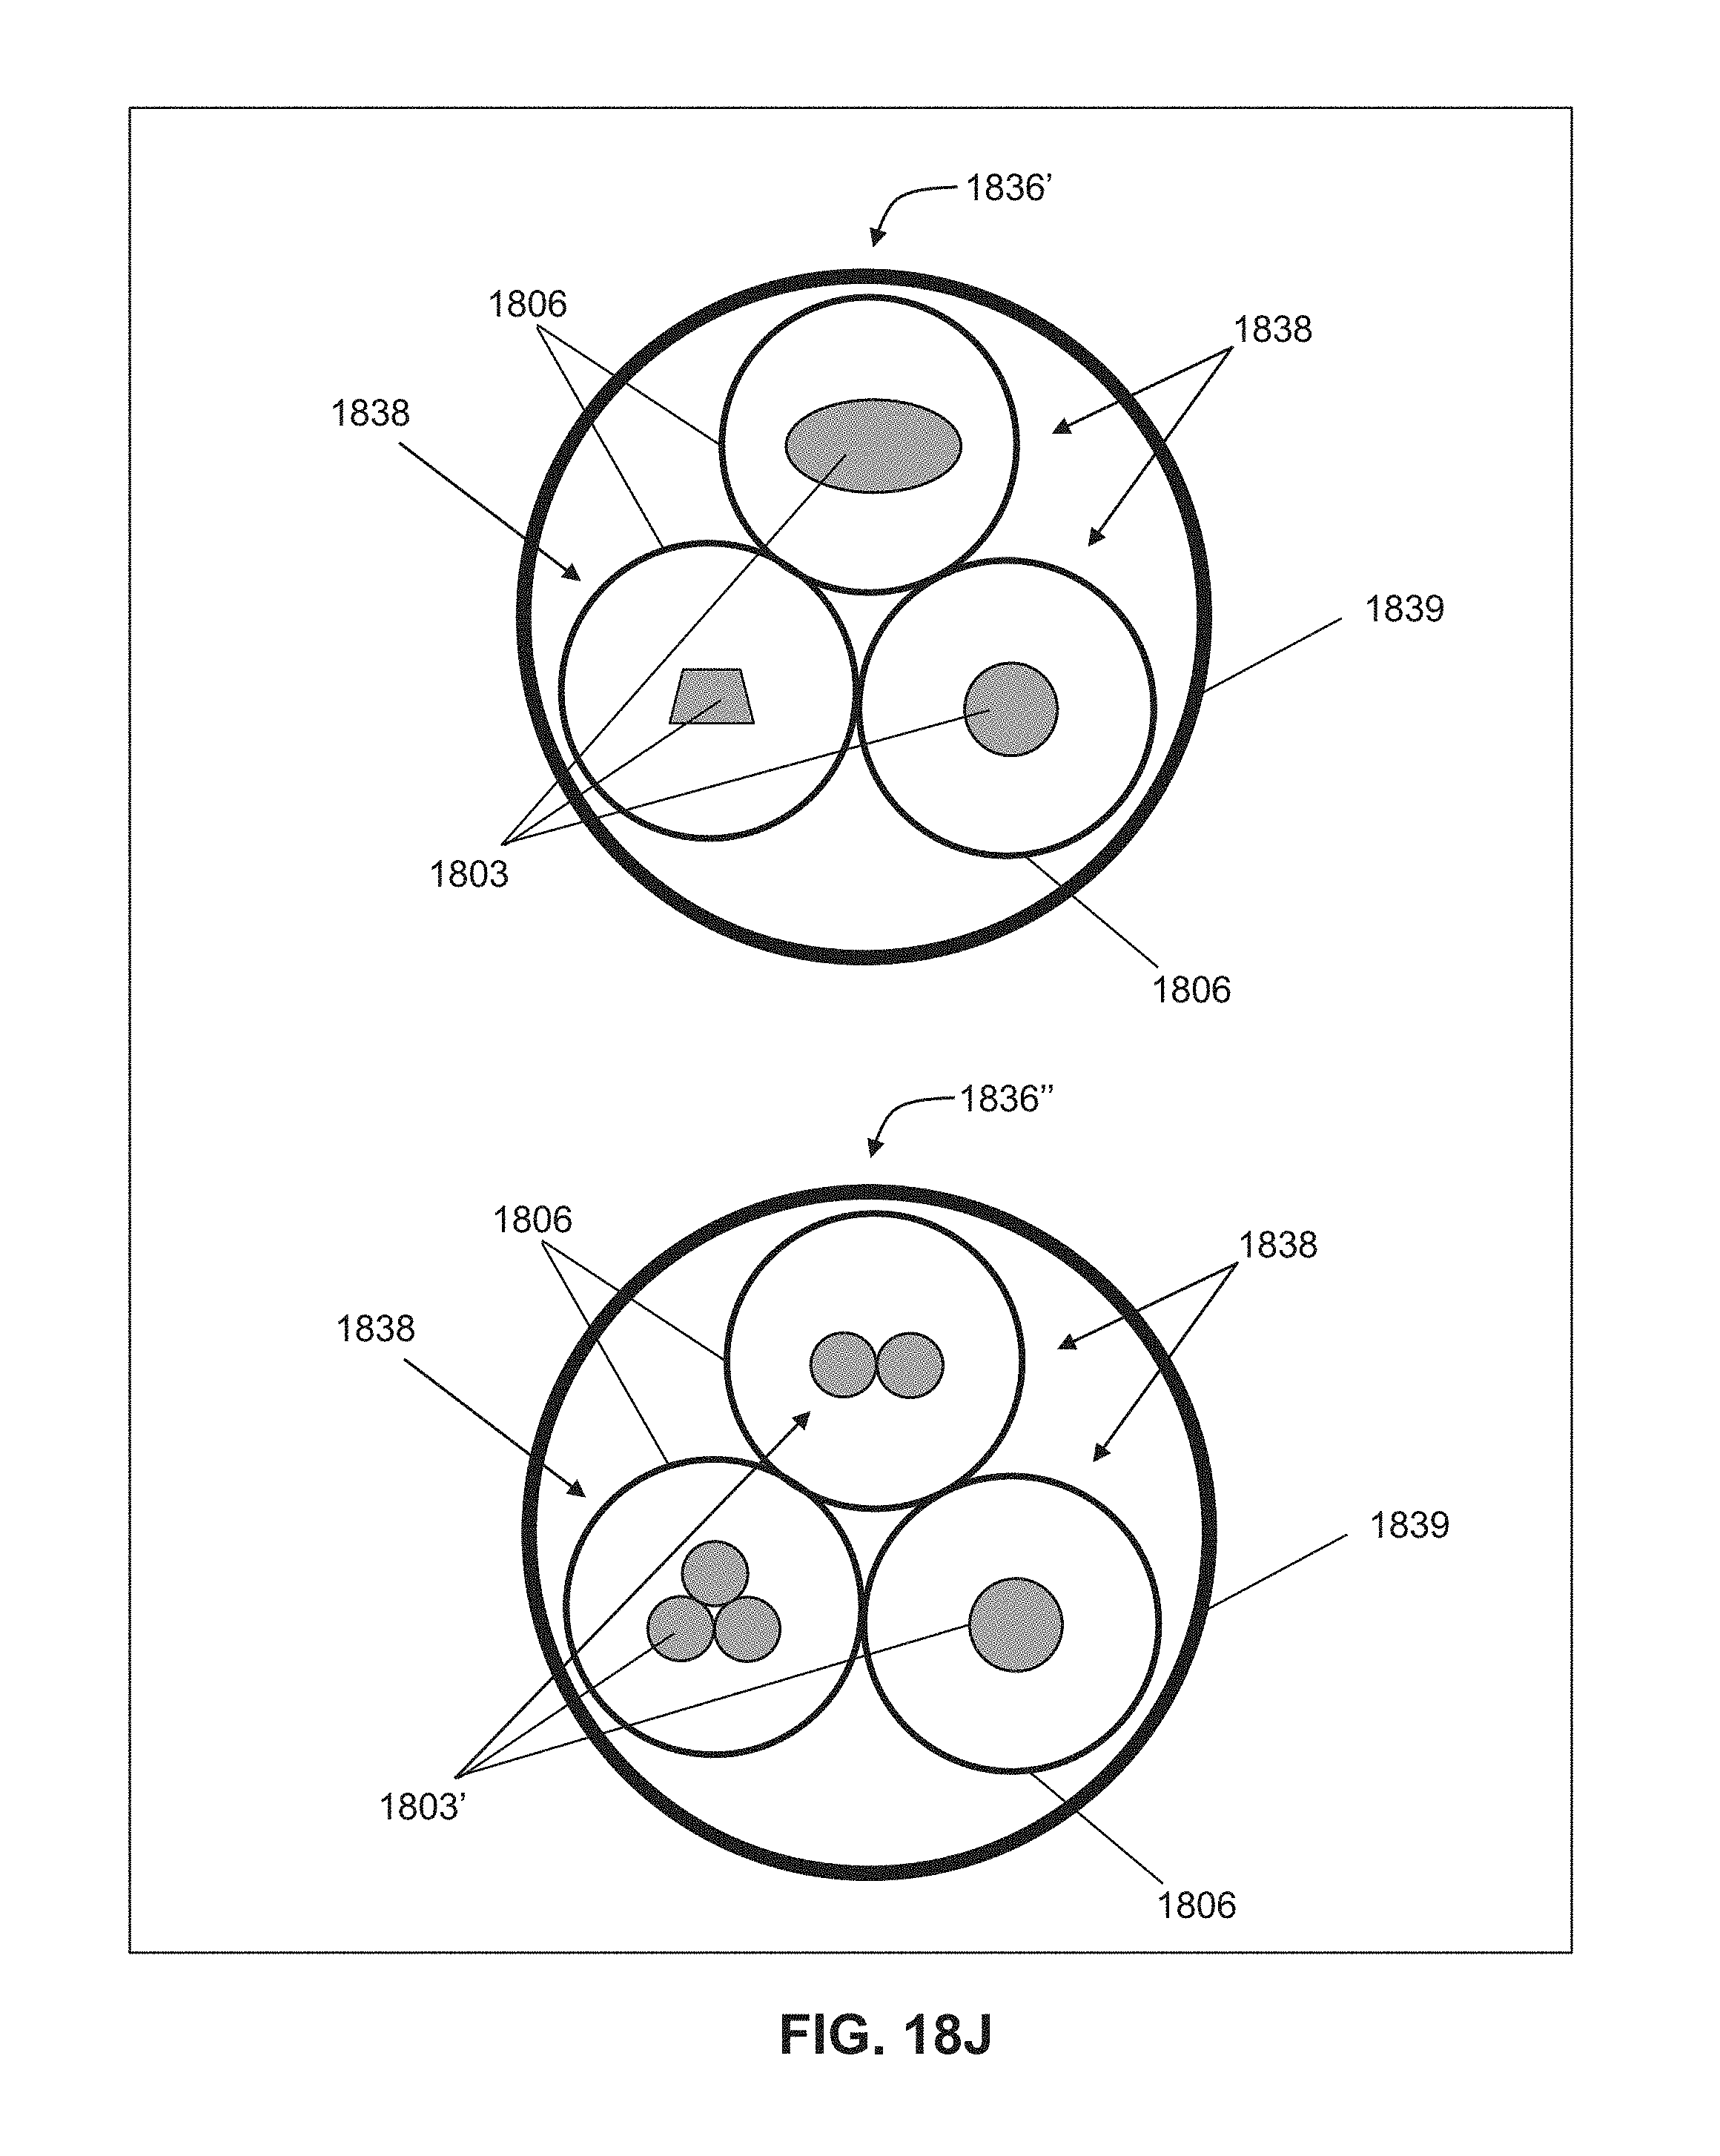 us10090606b2 antenna system with dielectric array and methods for Grounded Delta Transformer Diagram us10090606b2 antenna system with dielectric array and methods for use therewith patents